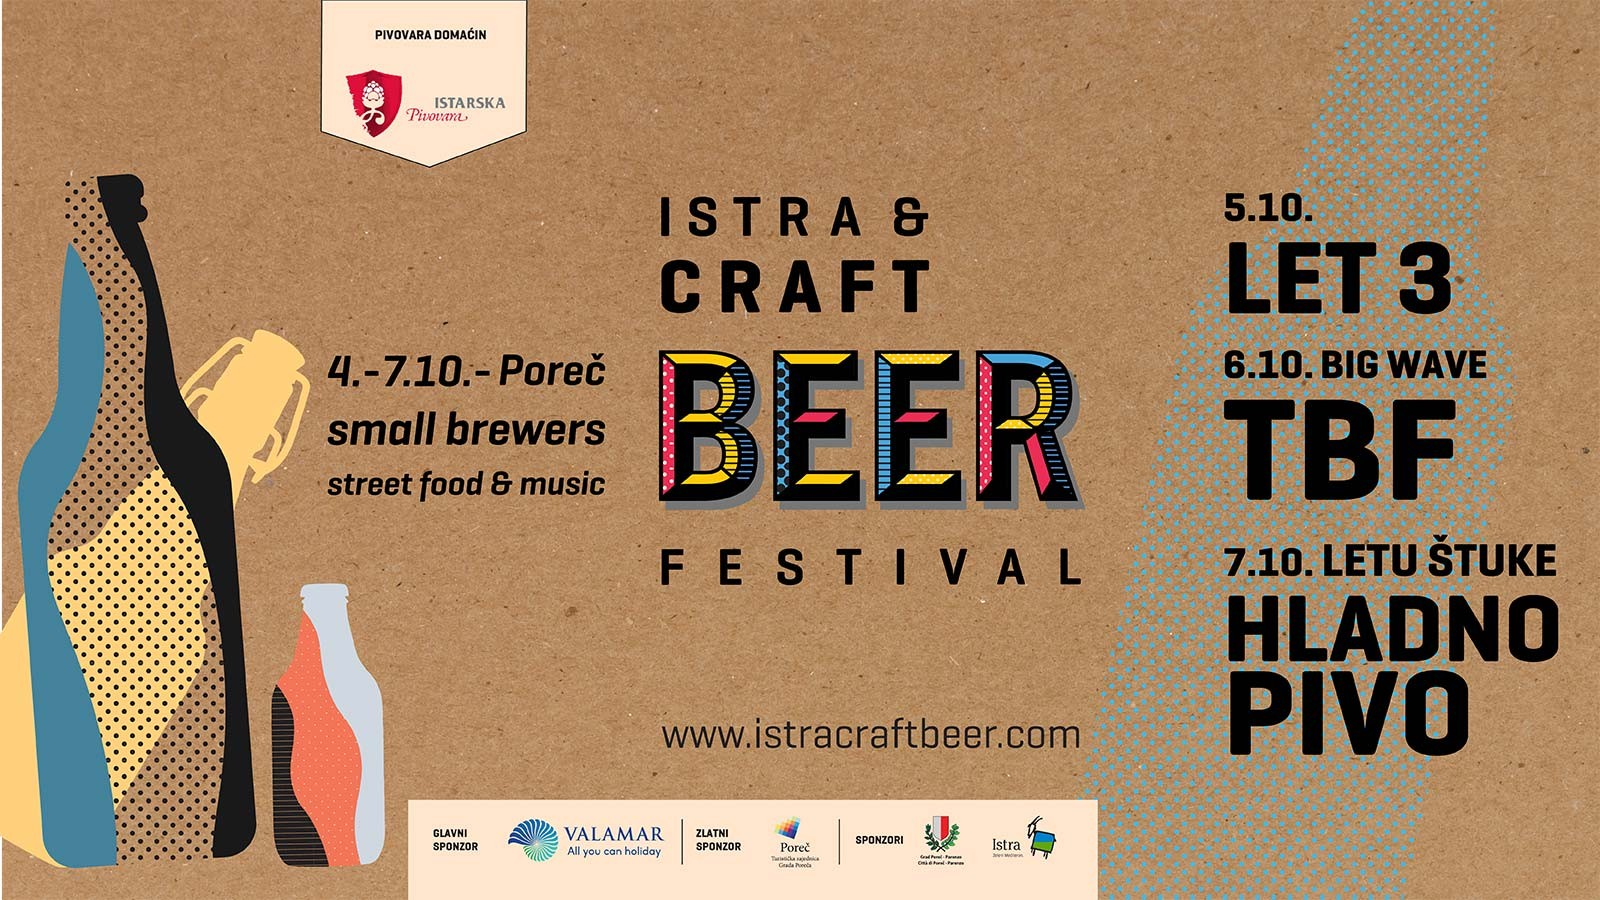 Istra & Craft Beer Festival